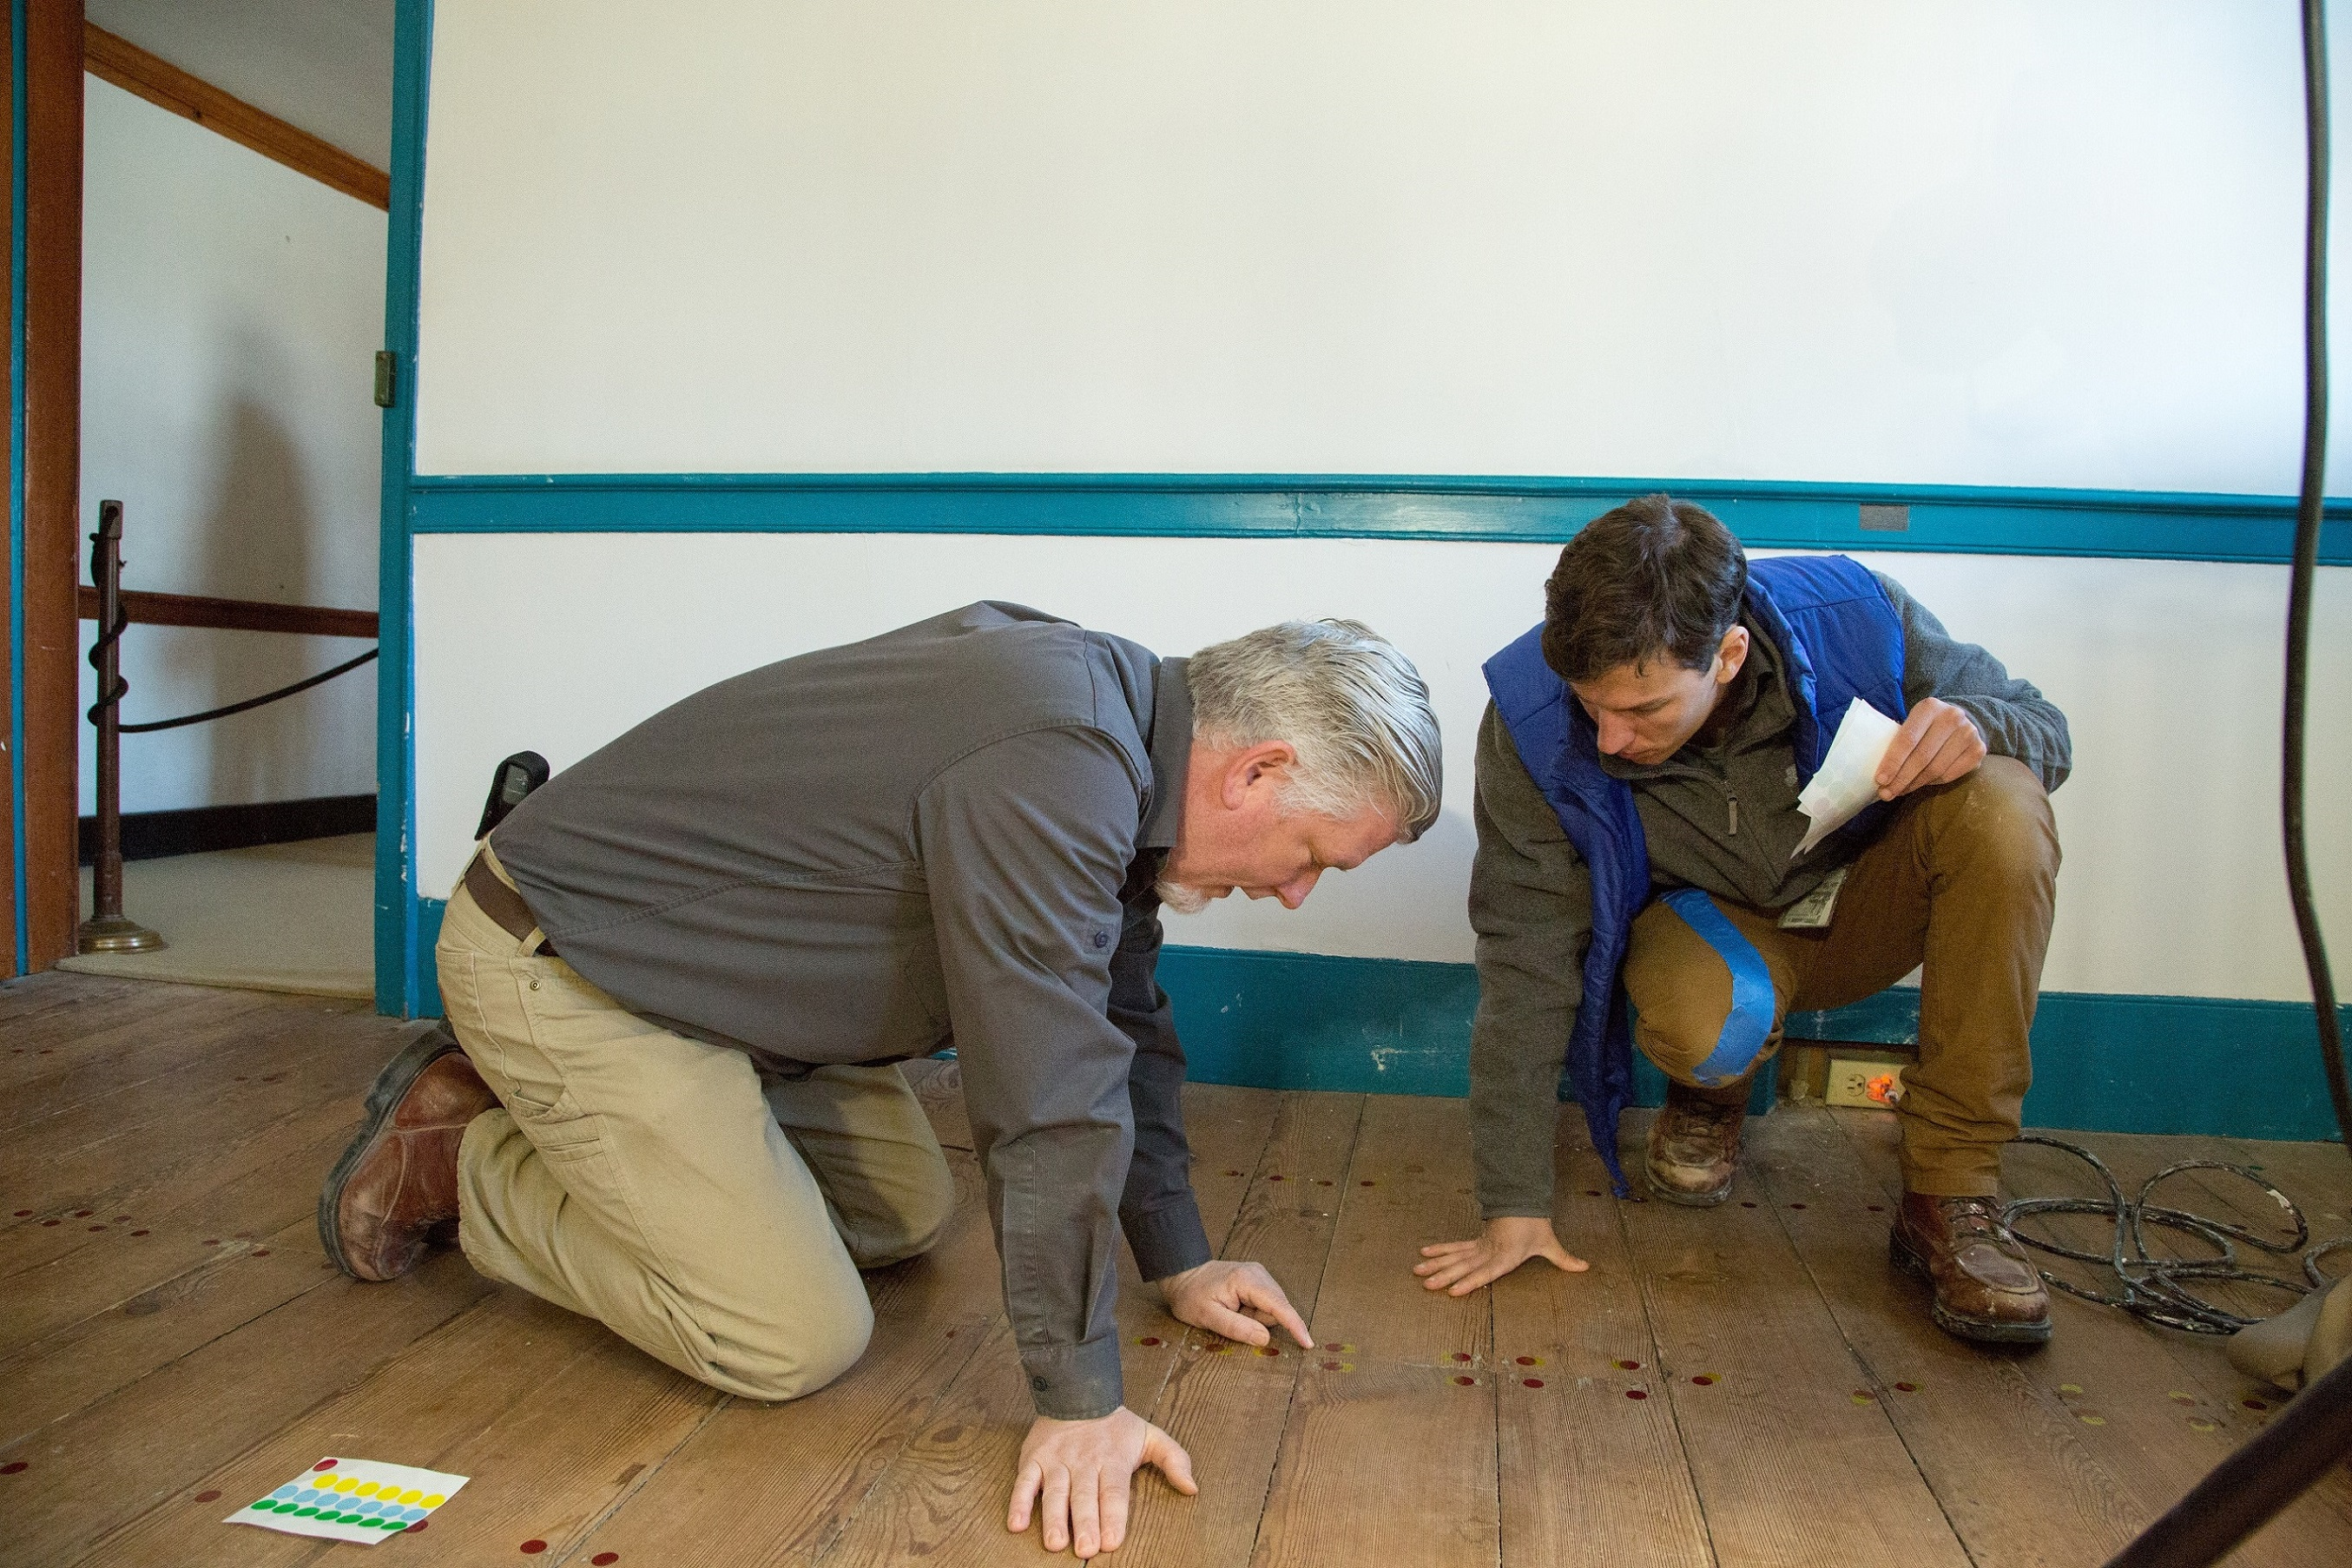 Director of Architecture, Thomas Reinhart, and Preservation Specialist, Eric Litchford, study the Blue Room floor nail patterns.